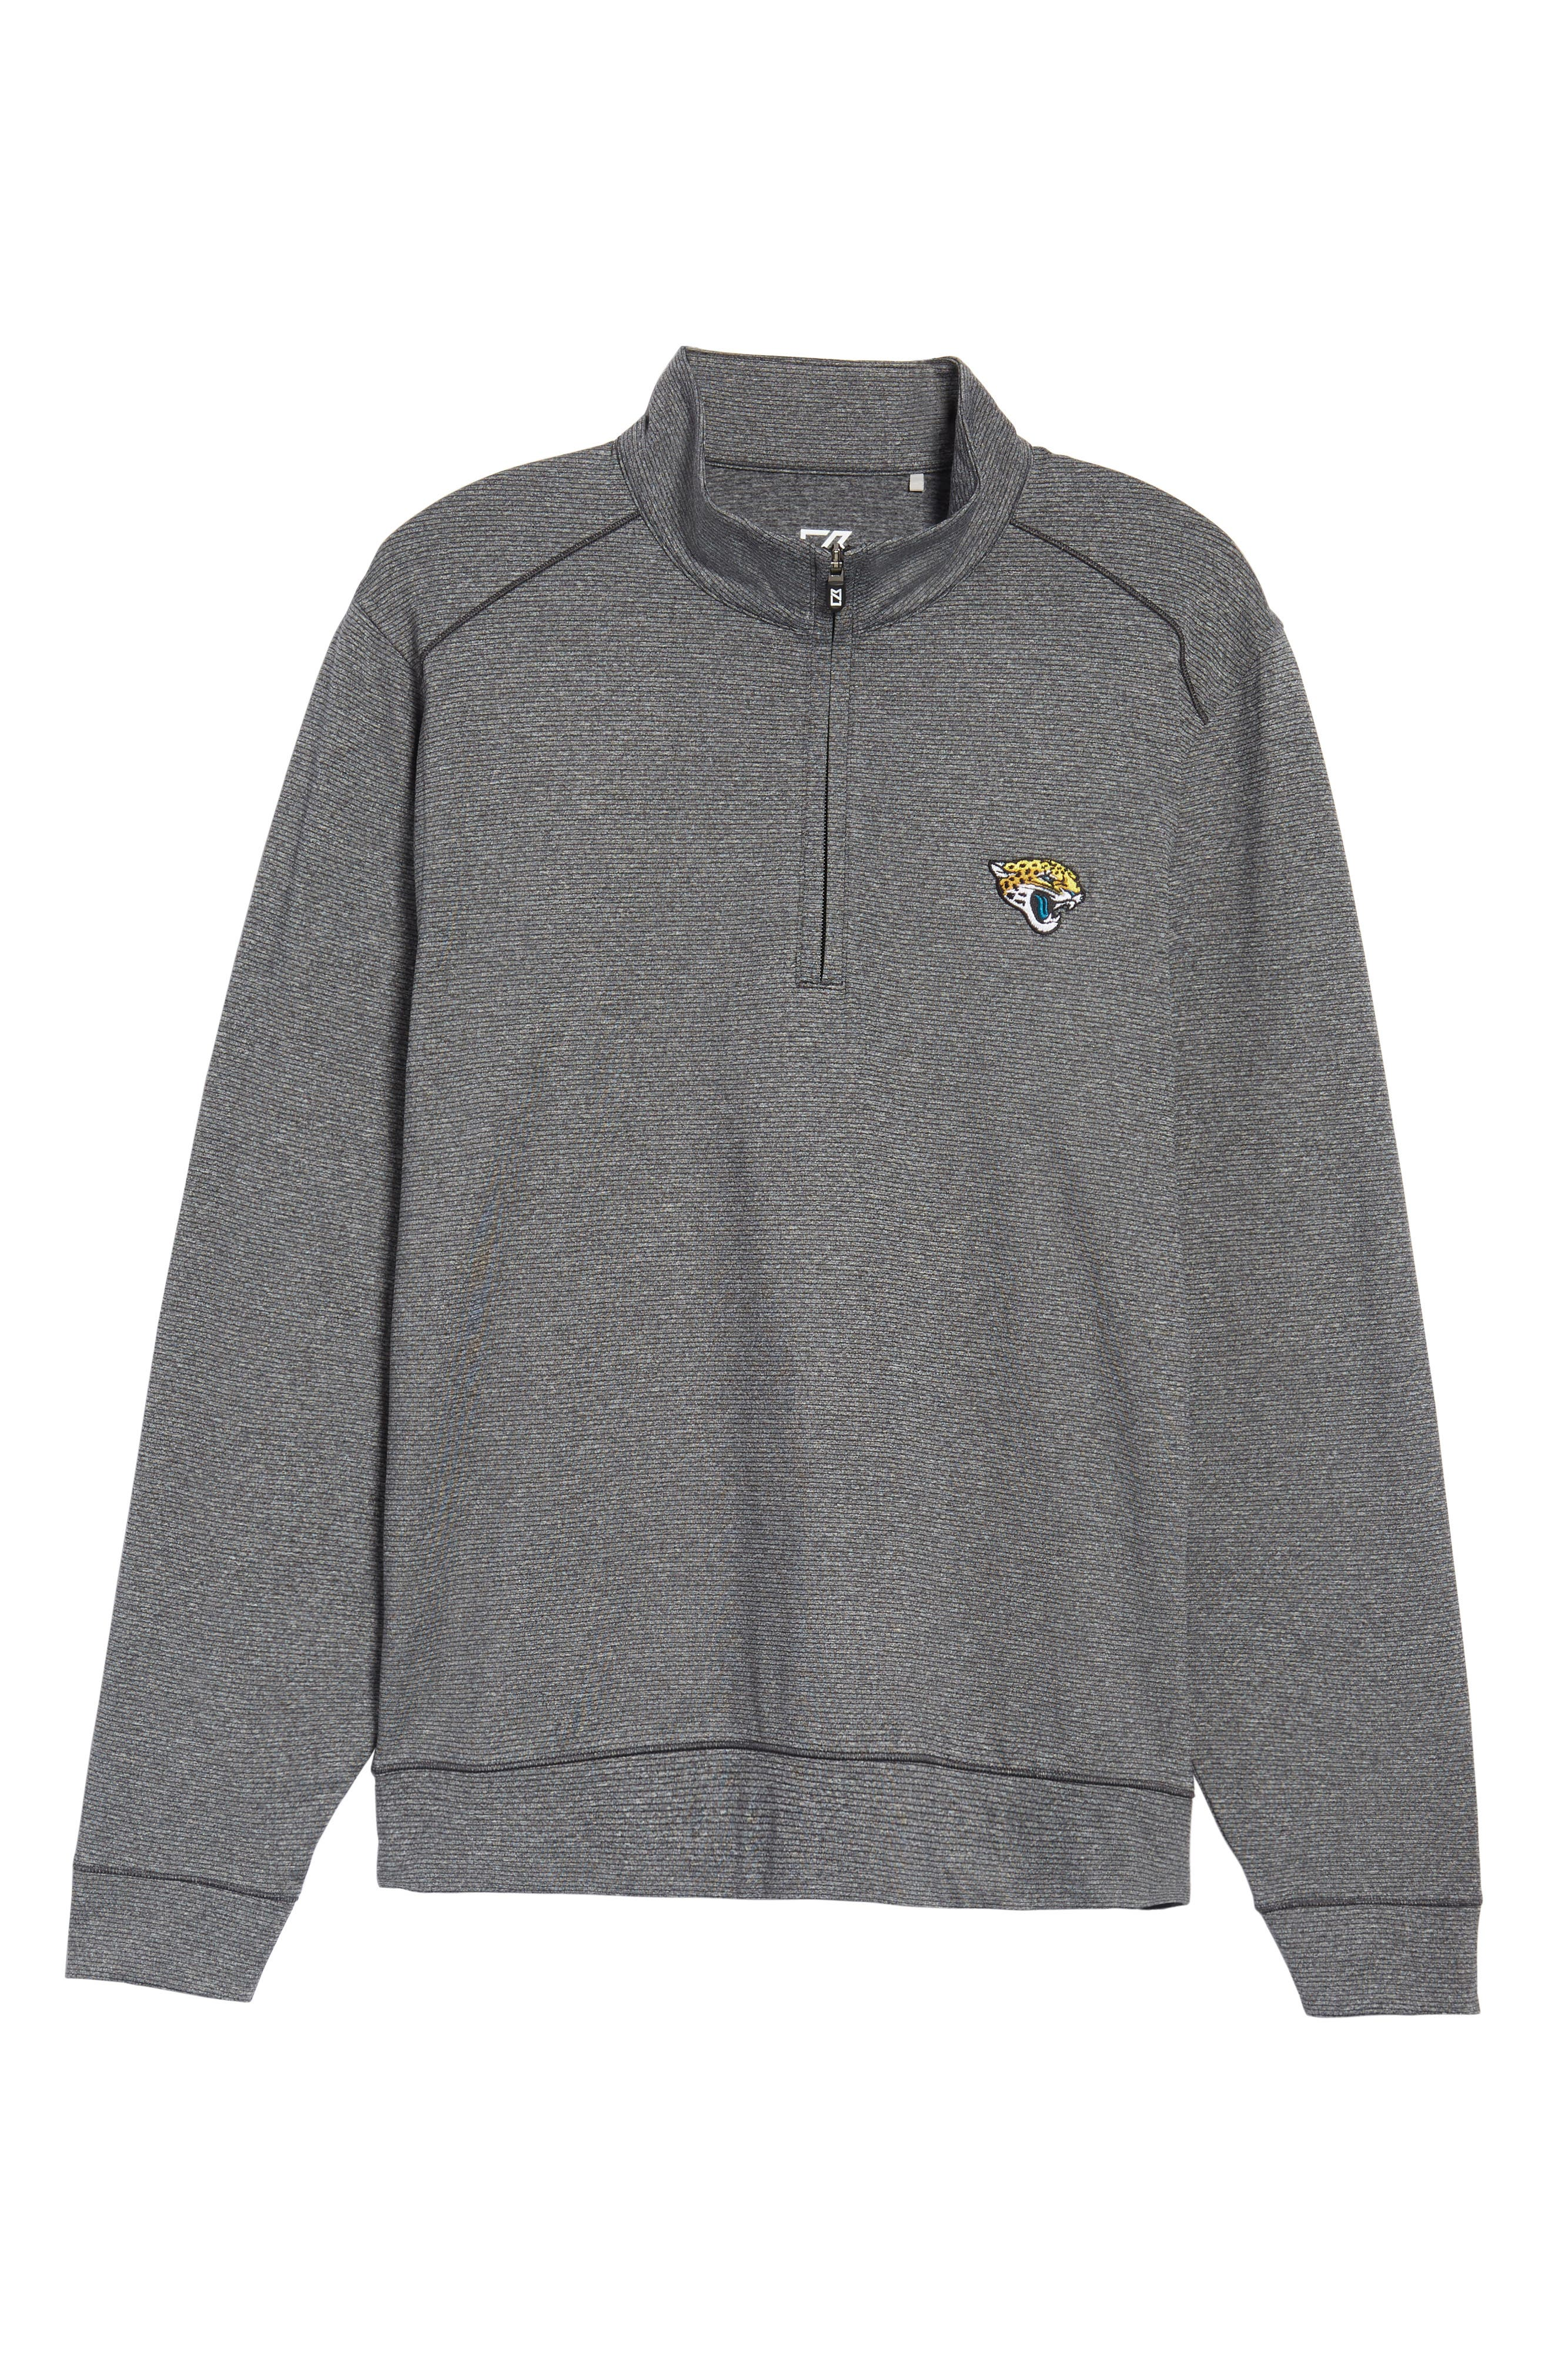 Shoreline - Jacksonville Jaguars Half Zip Pullover,                             Alternate thumbnail 6, color,